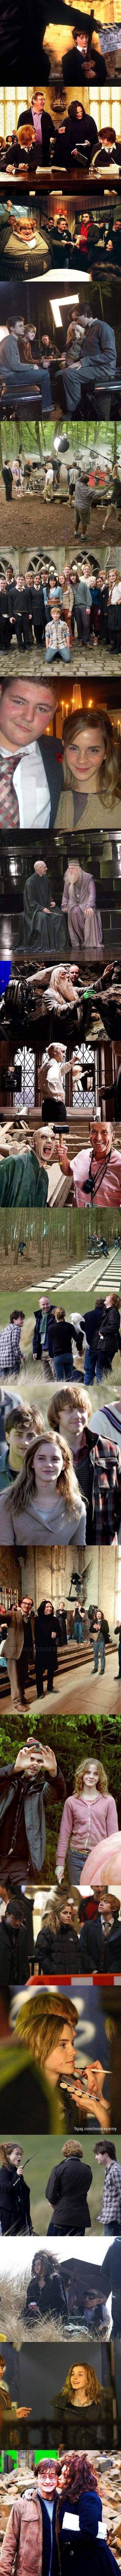 Harry Potter Behind The Scenes – 22 Photos | WeKnowMemes